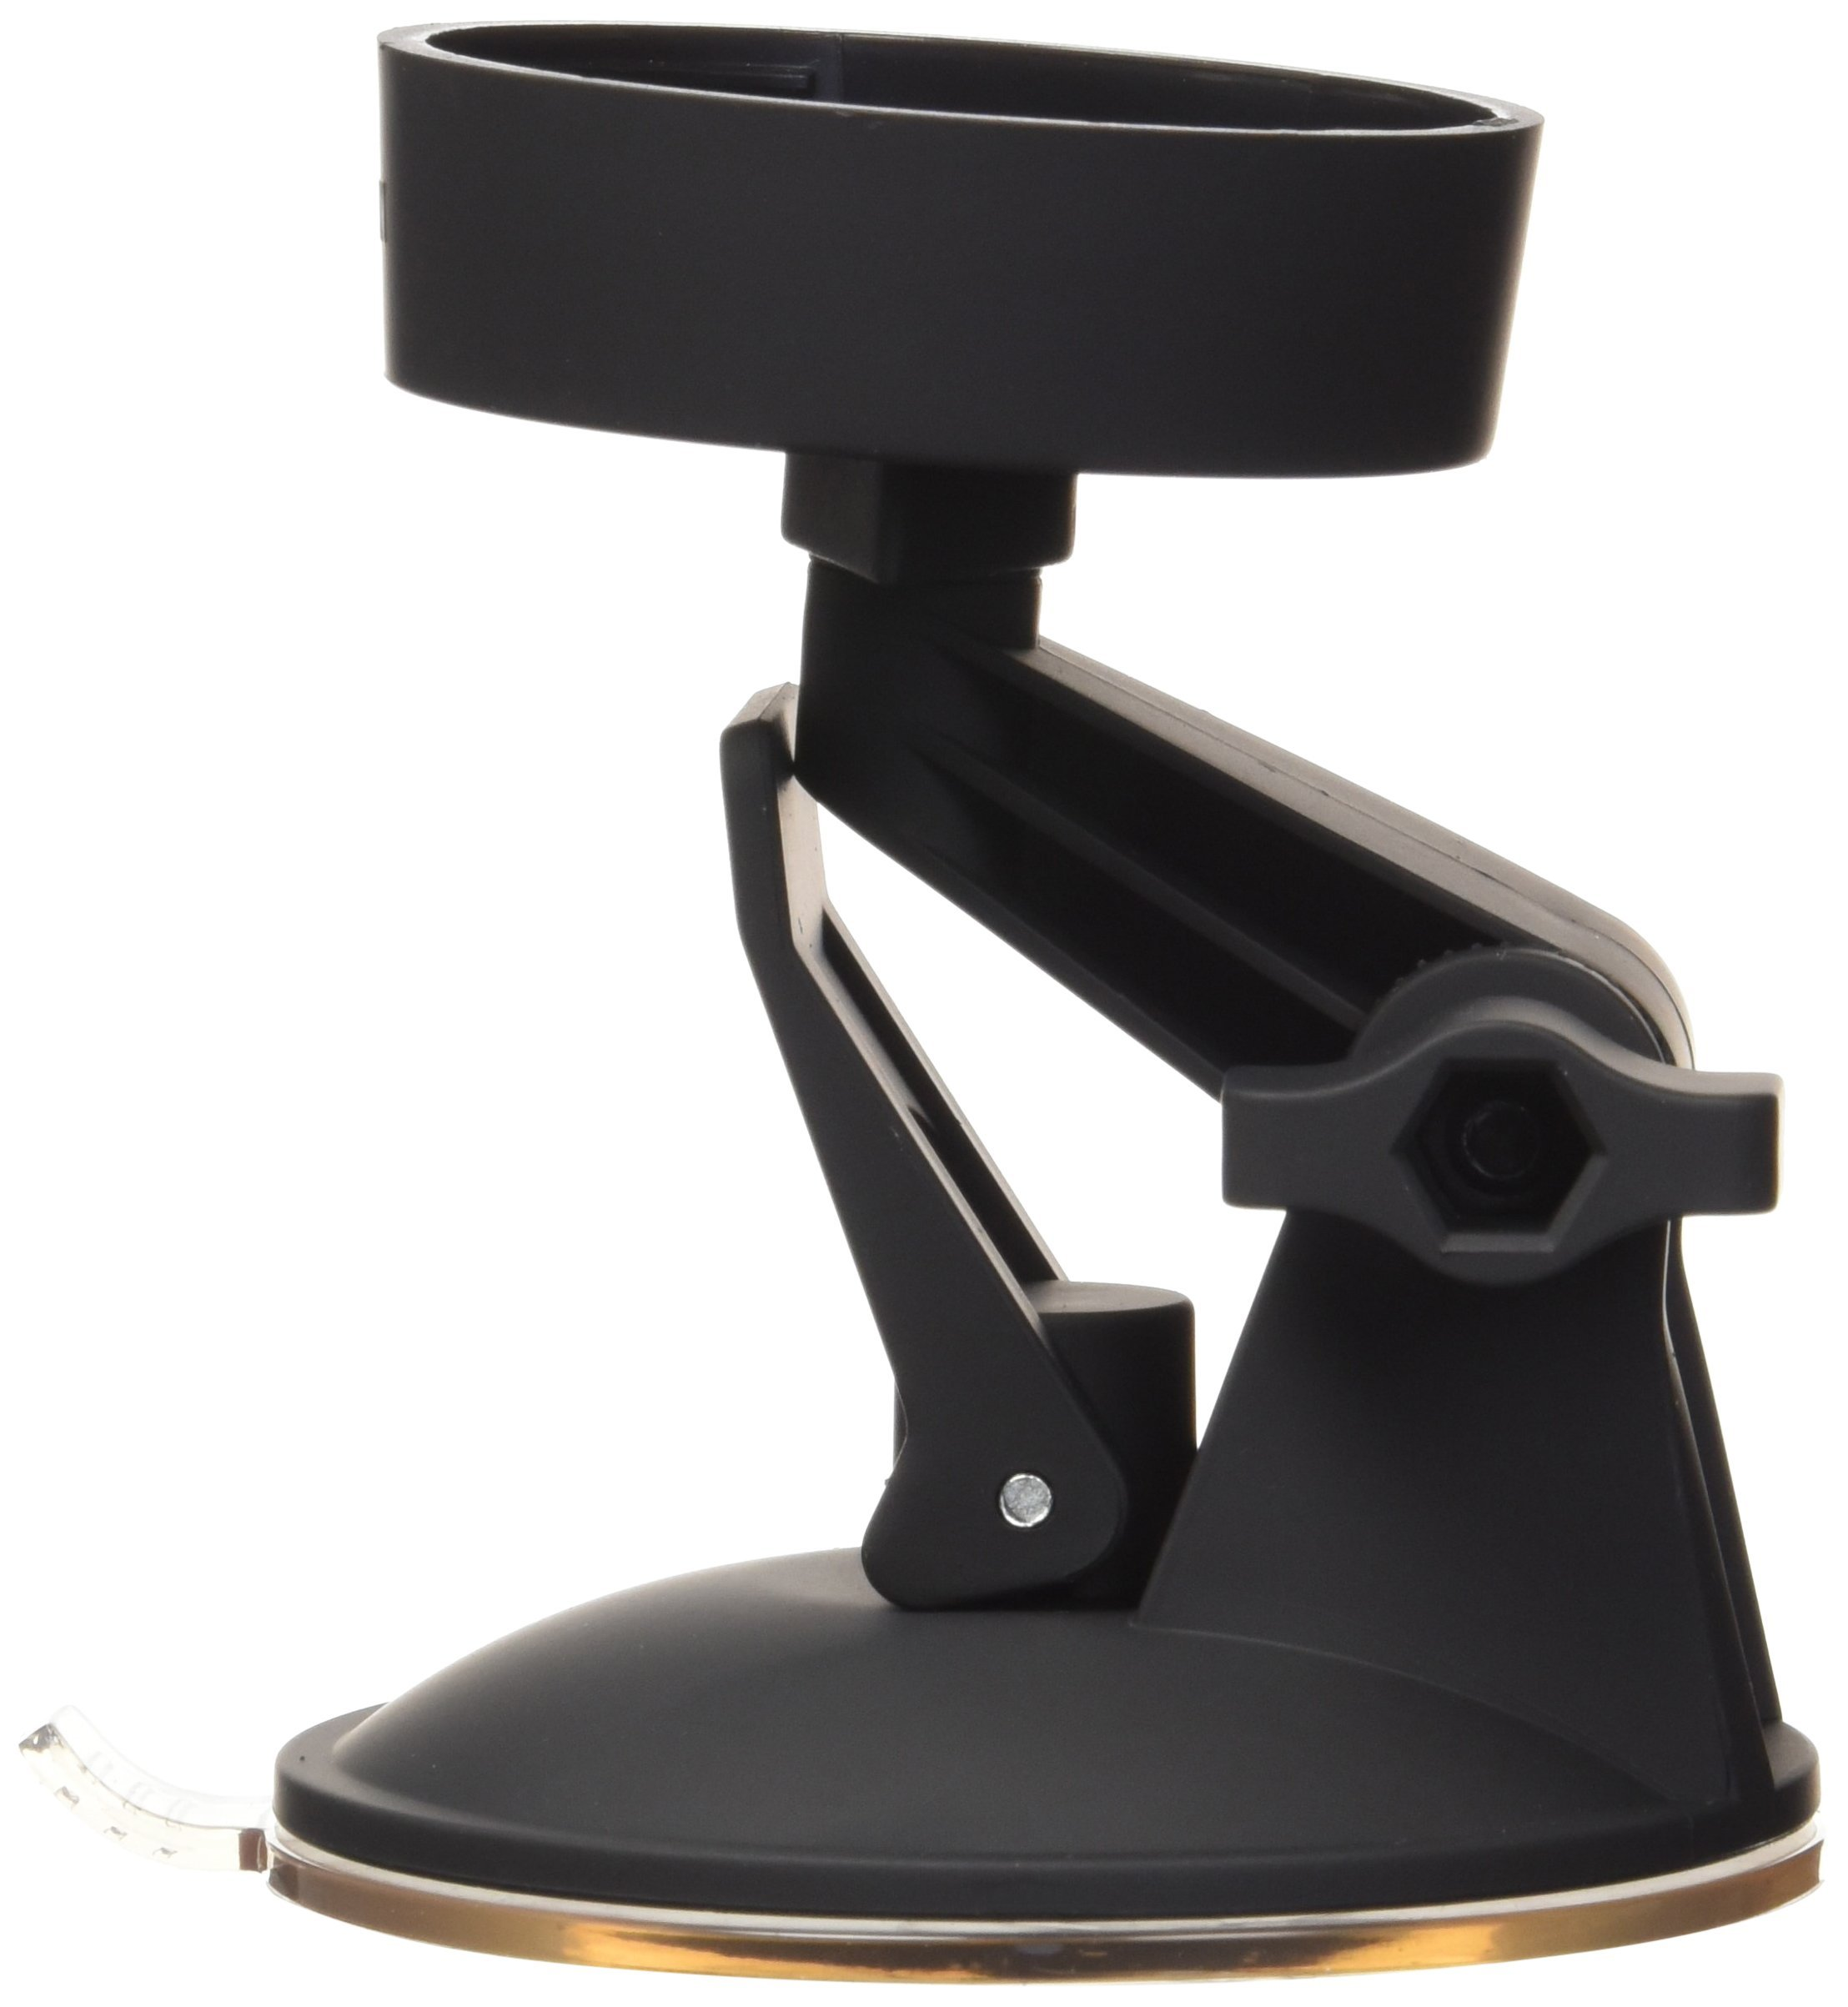 Doc Johnson Main Squeeze - Suction Cup Accessory - Swivels & Bends For Custom Positioning - Strogly Adheres to Any Smooth Non-Pourus Surface - Hands Fee Action